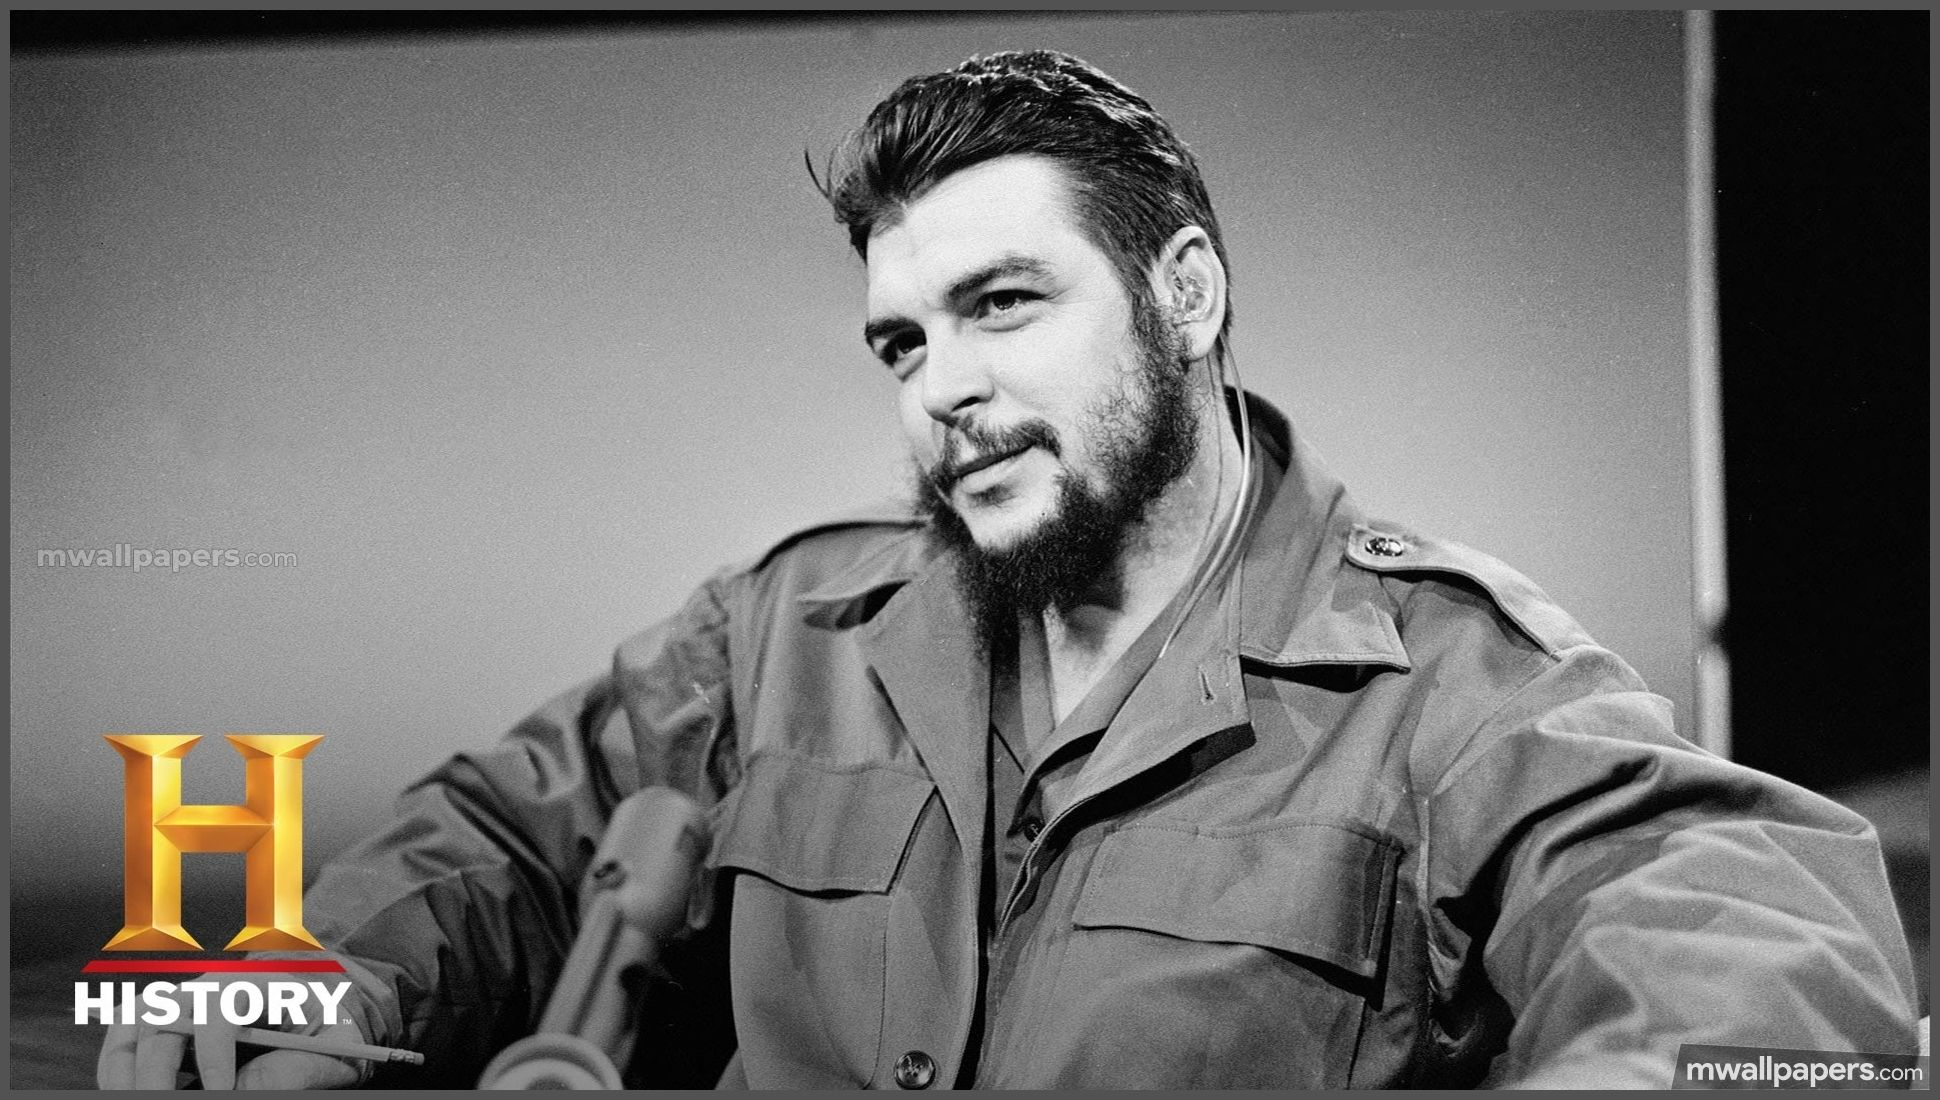 Che Guevara Wallpapers Hd Best Hd Photos 1080p 1196 Cheguevara